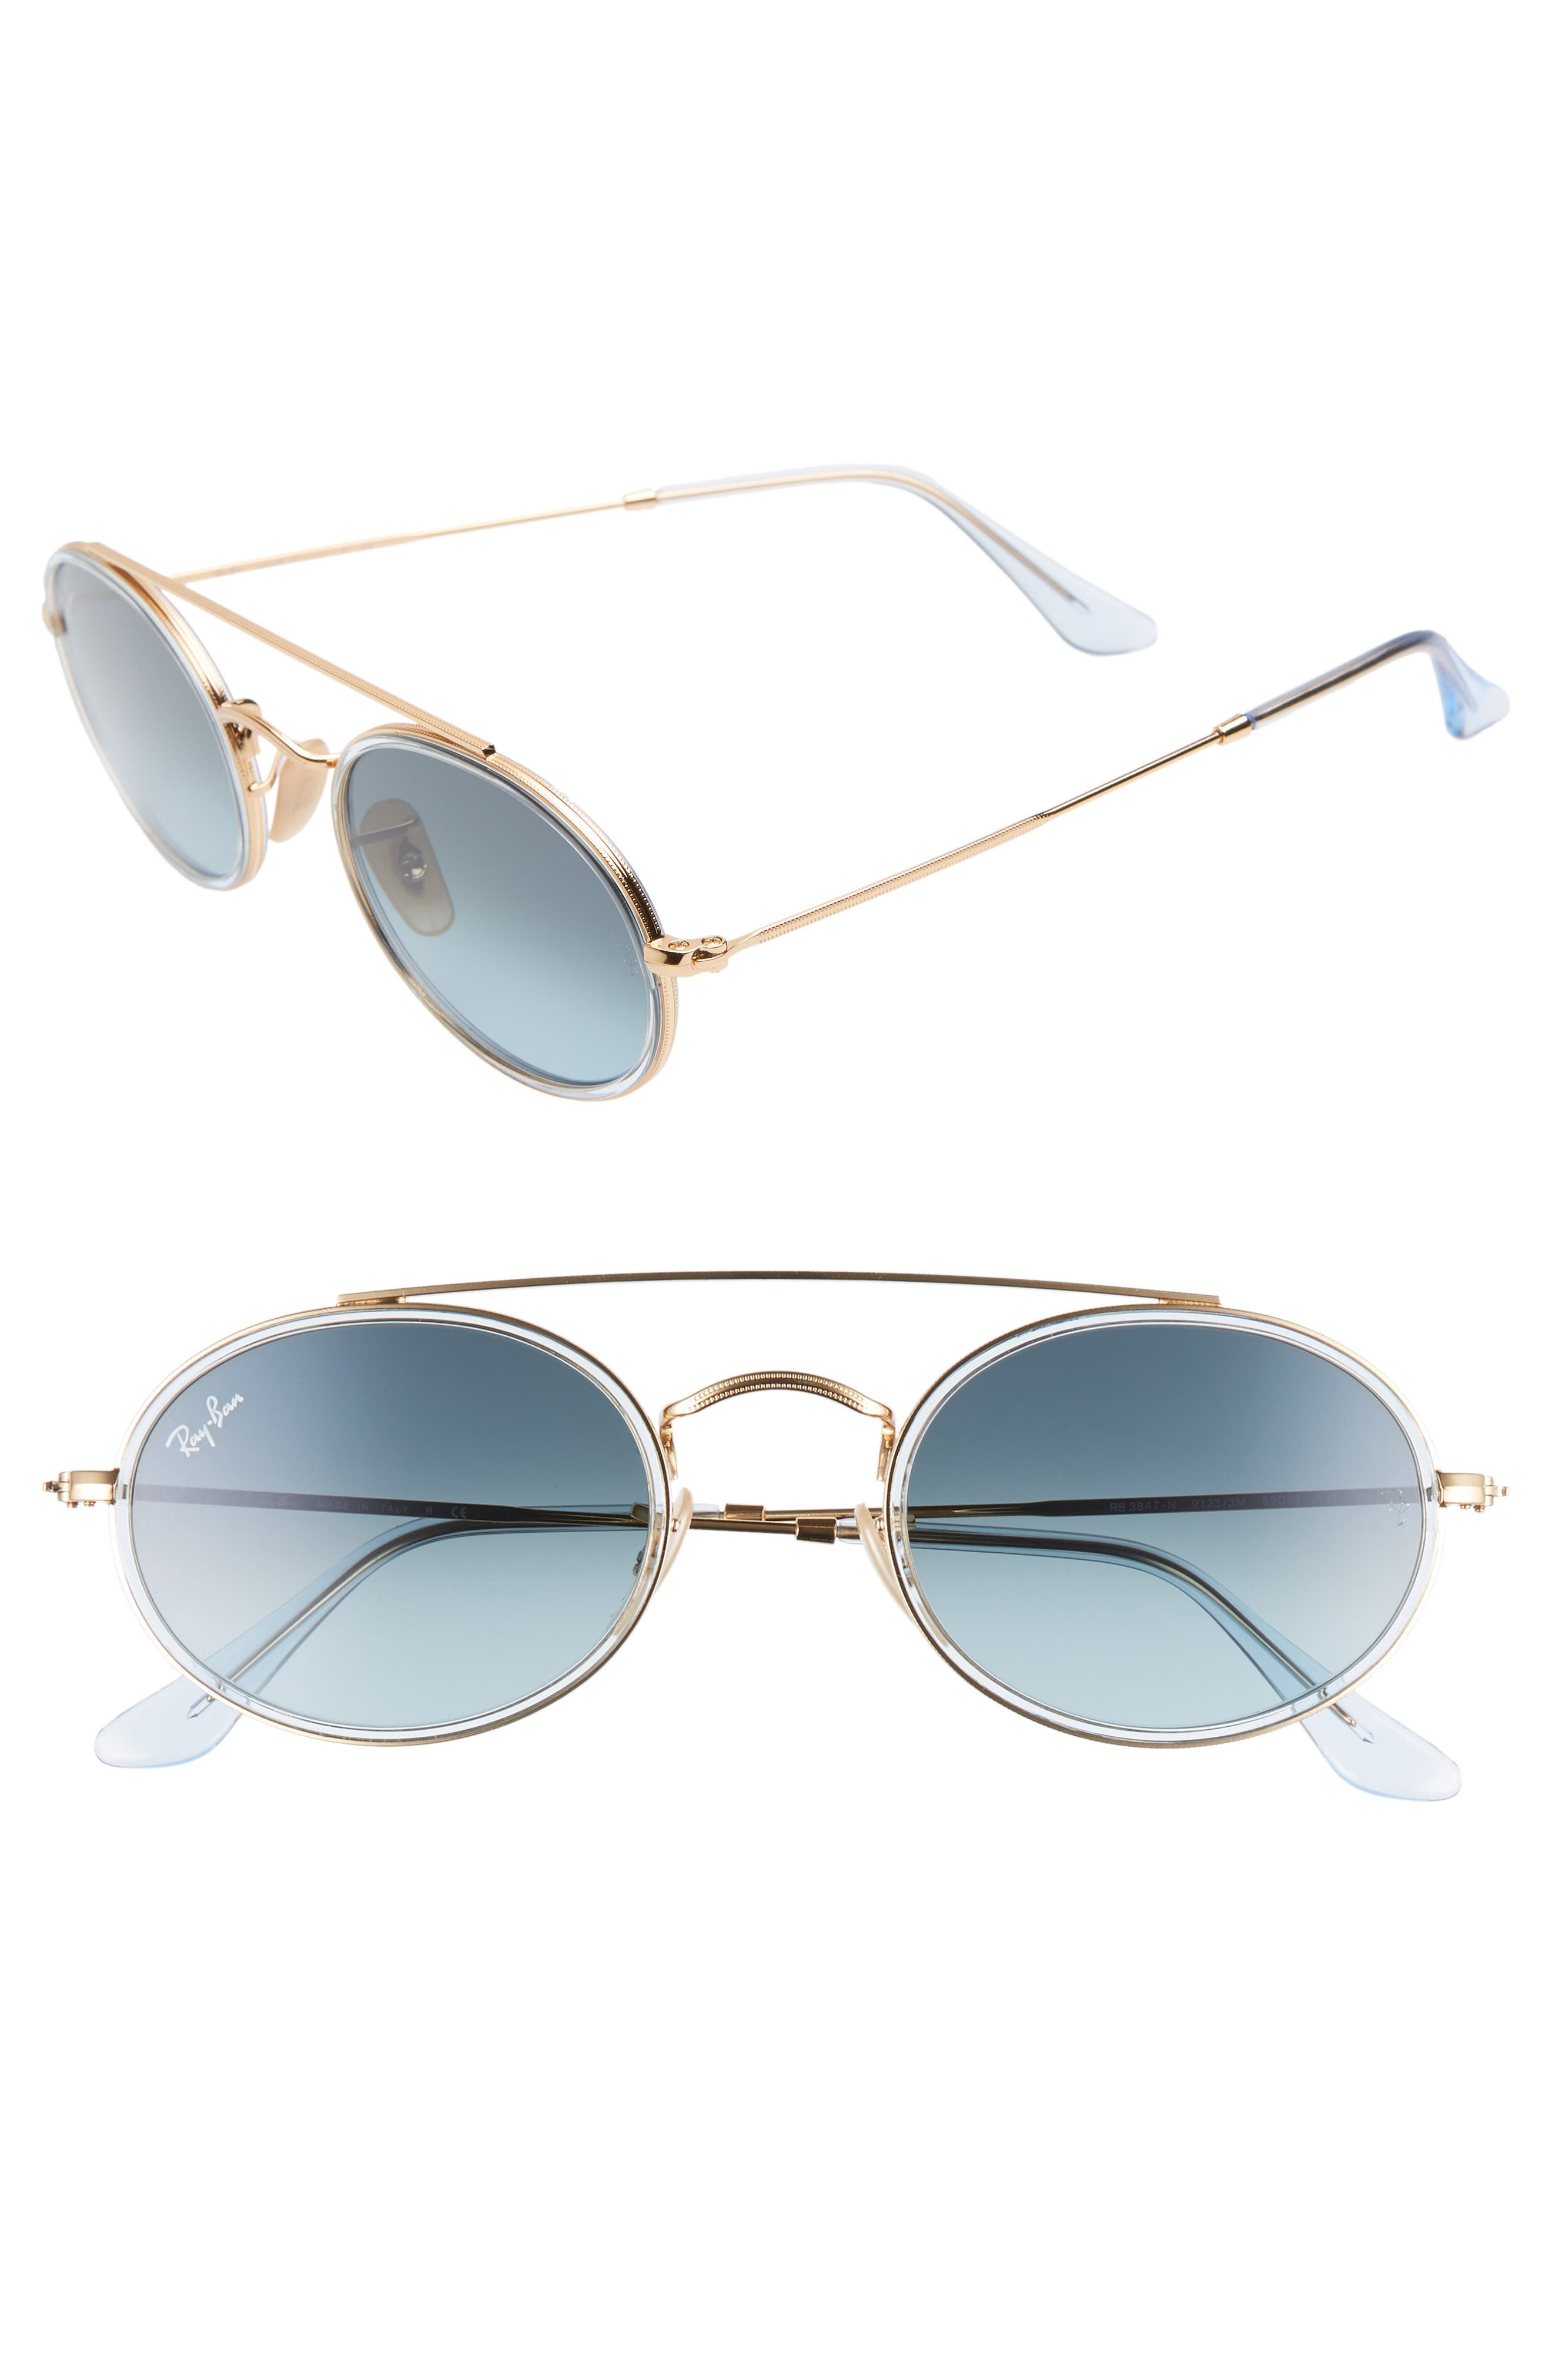 Ray-Ban Elite 52Mm Gradient Oval Sunglasses - Gold/ Blue Gradient